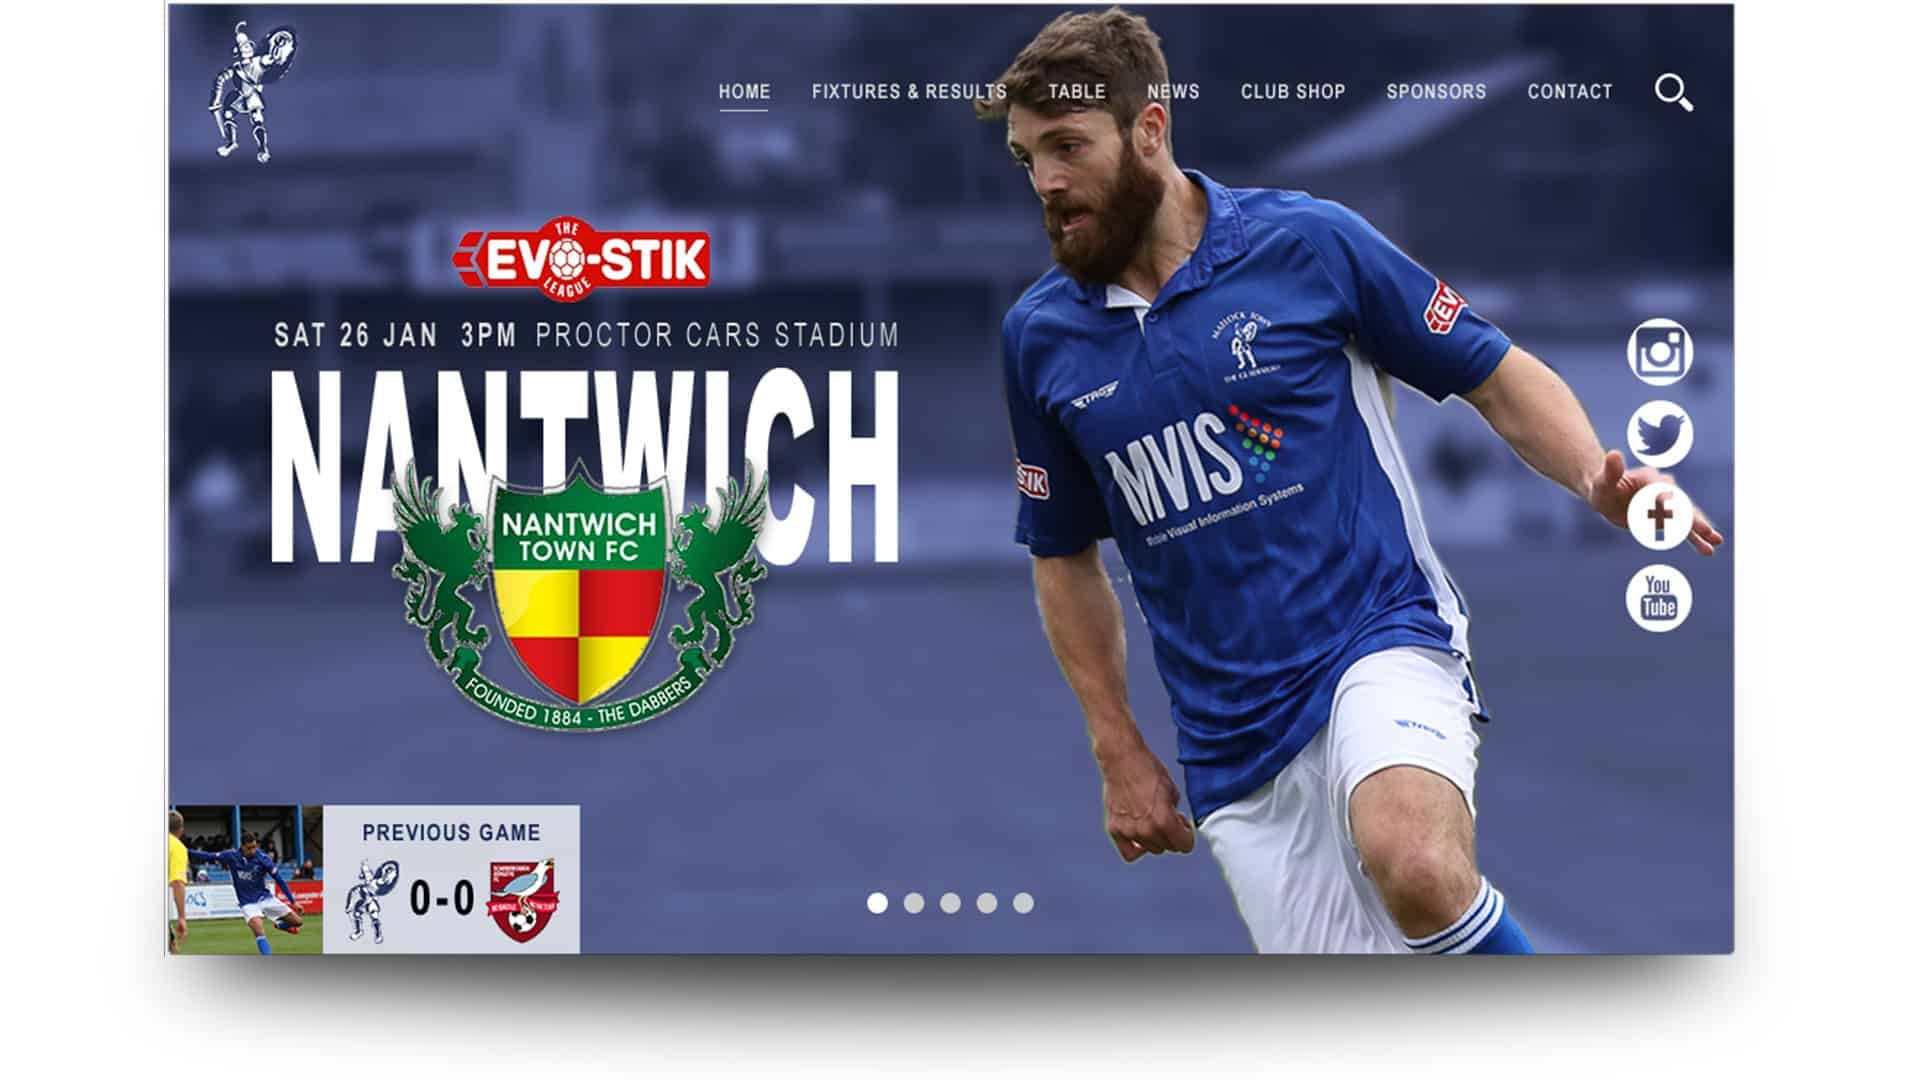 matlock town fc - wordpress website design